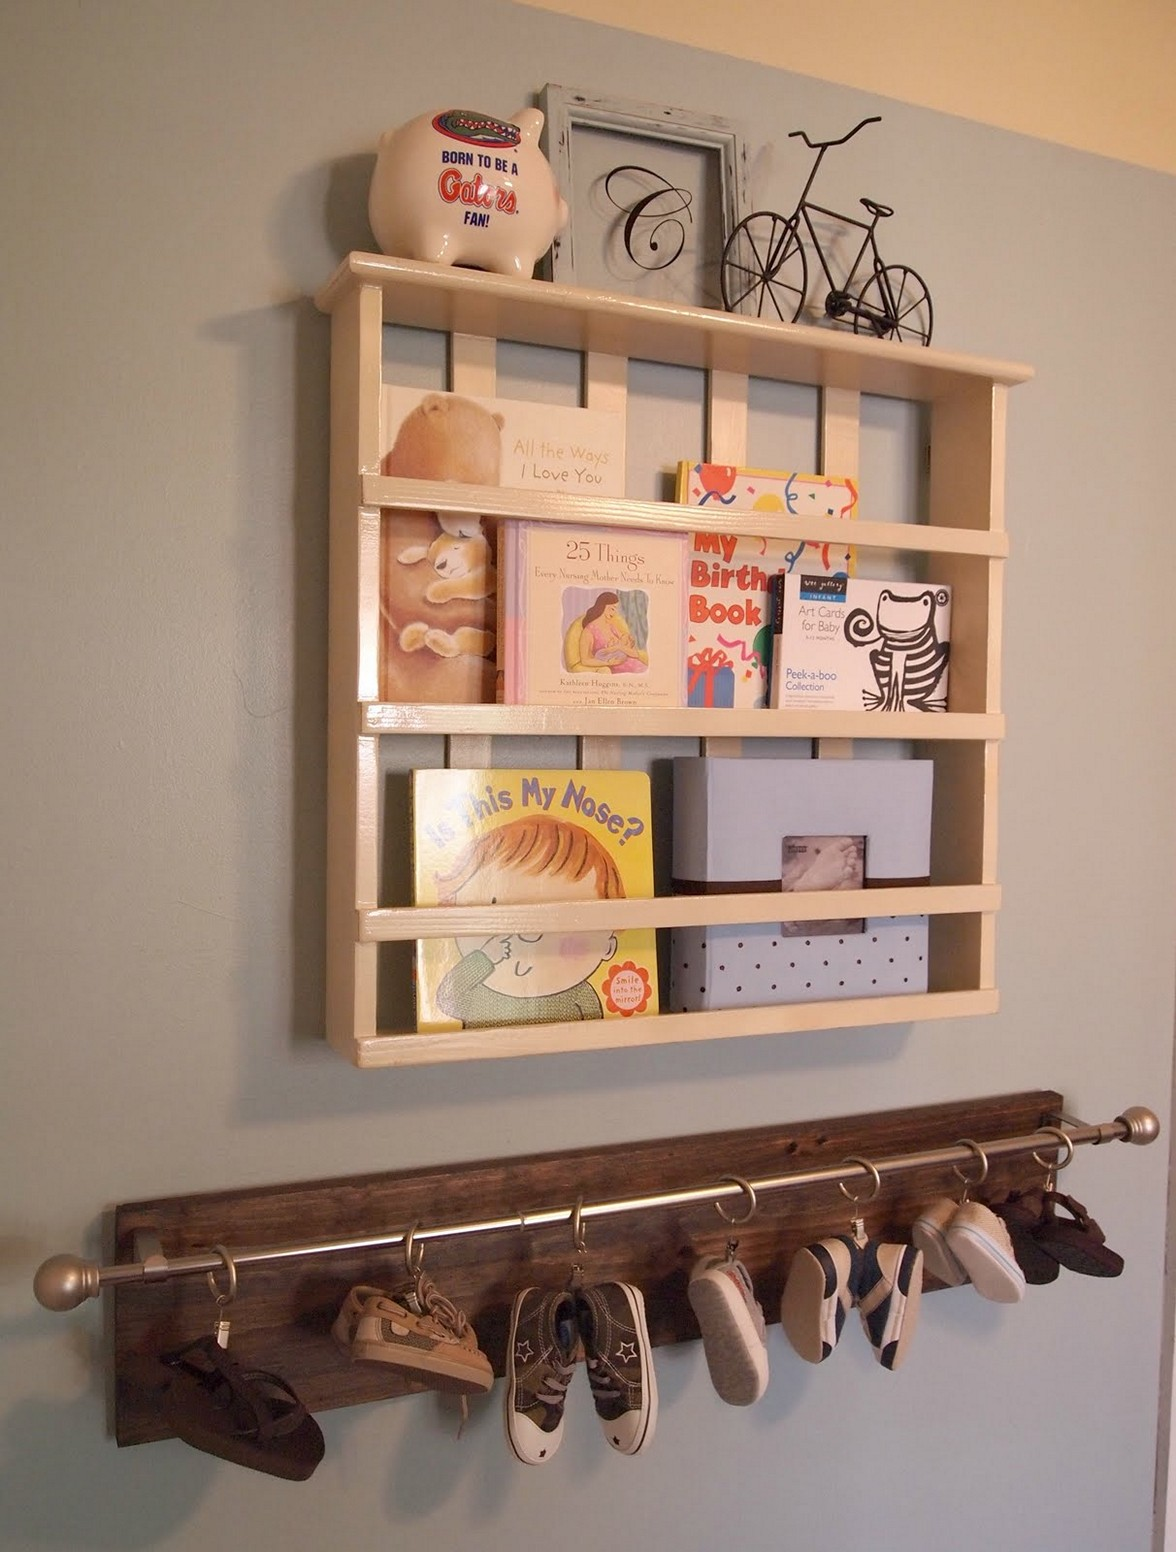 Wooden Recycled Baby Shoe Rack Wall Decor Ideas Diy Shoe Rack Diy Shoe Storage Baby Shoe Storage